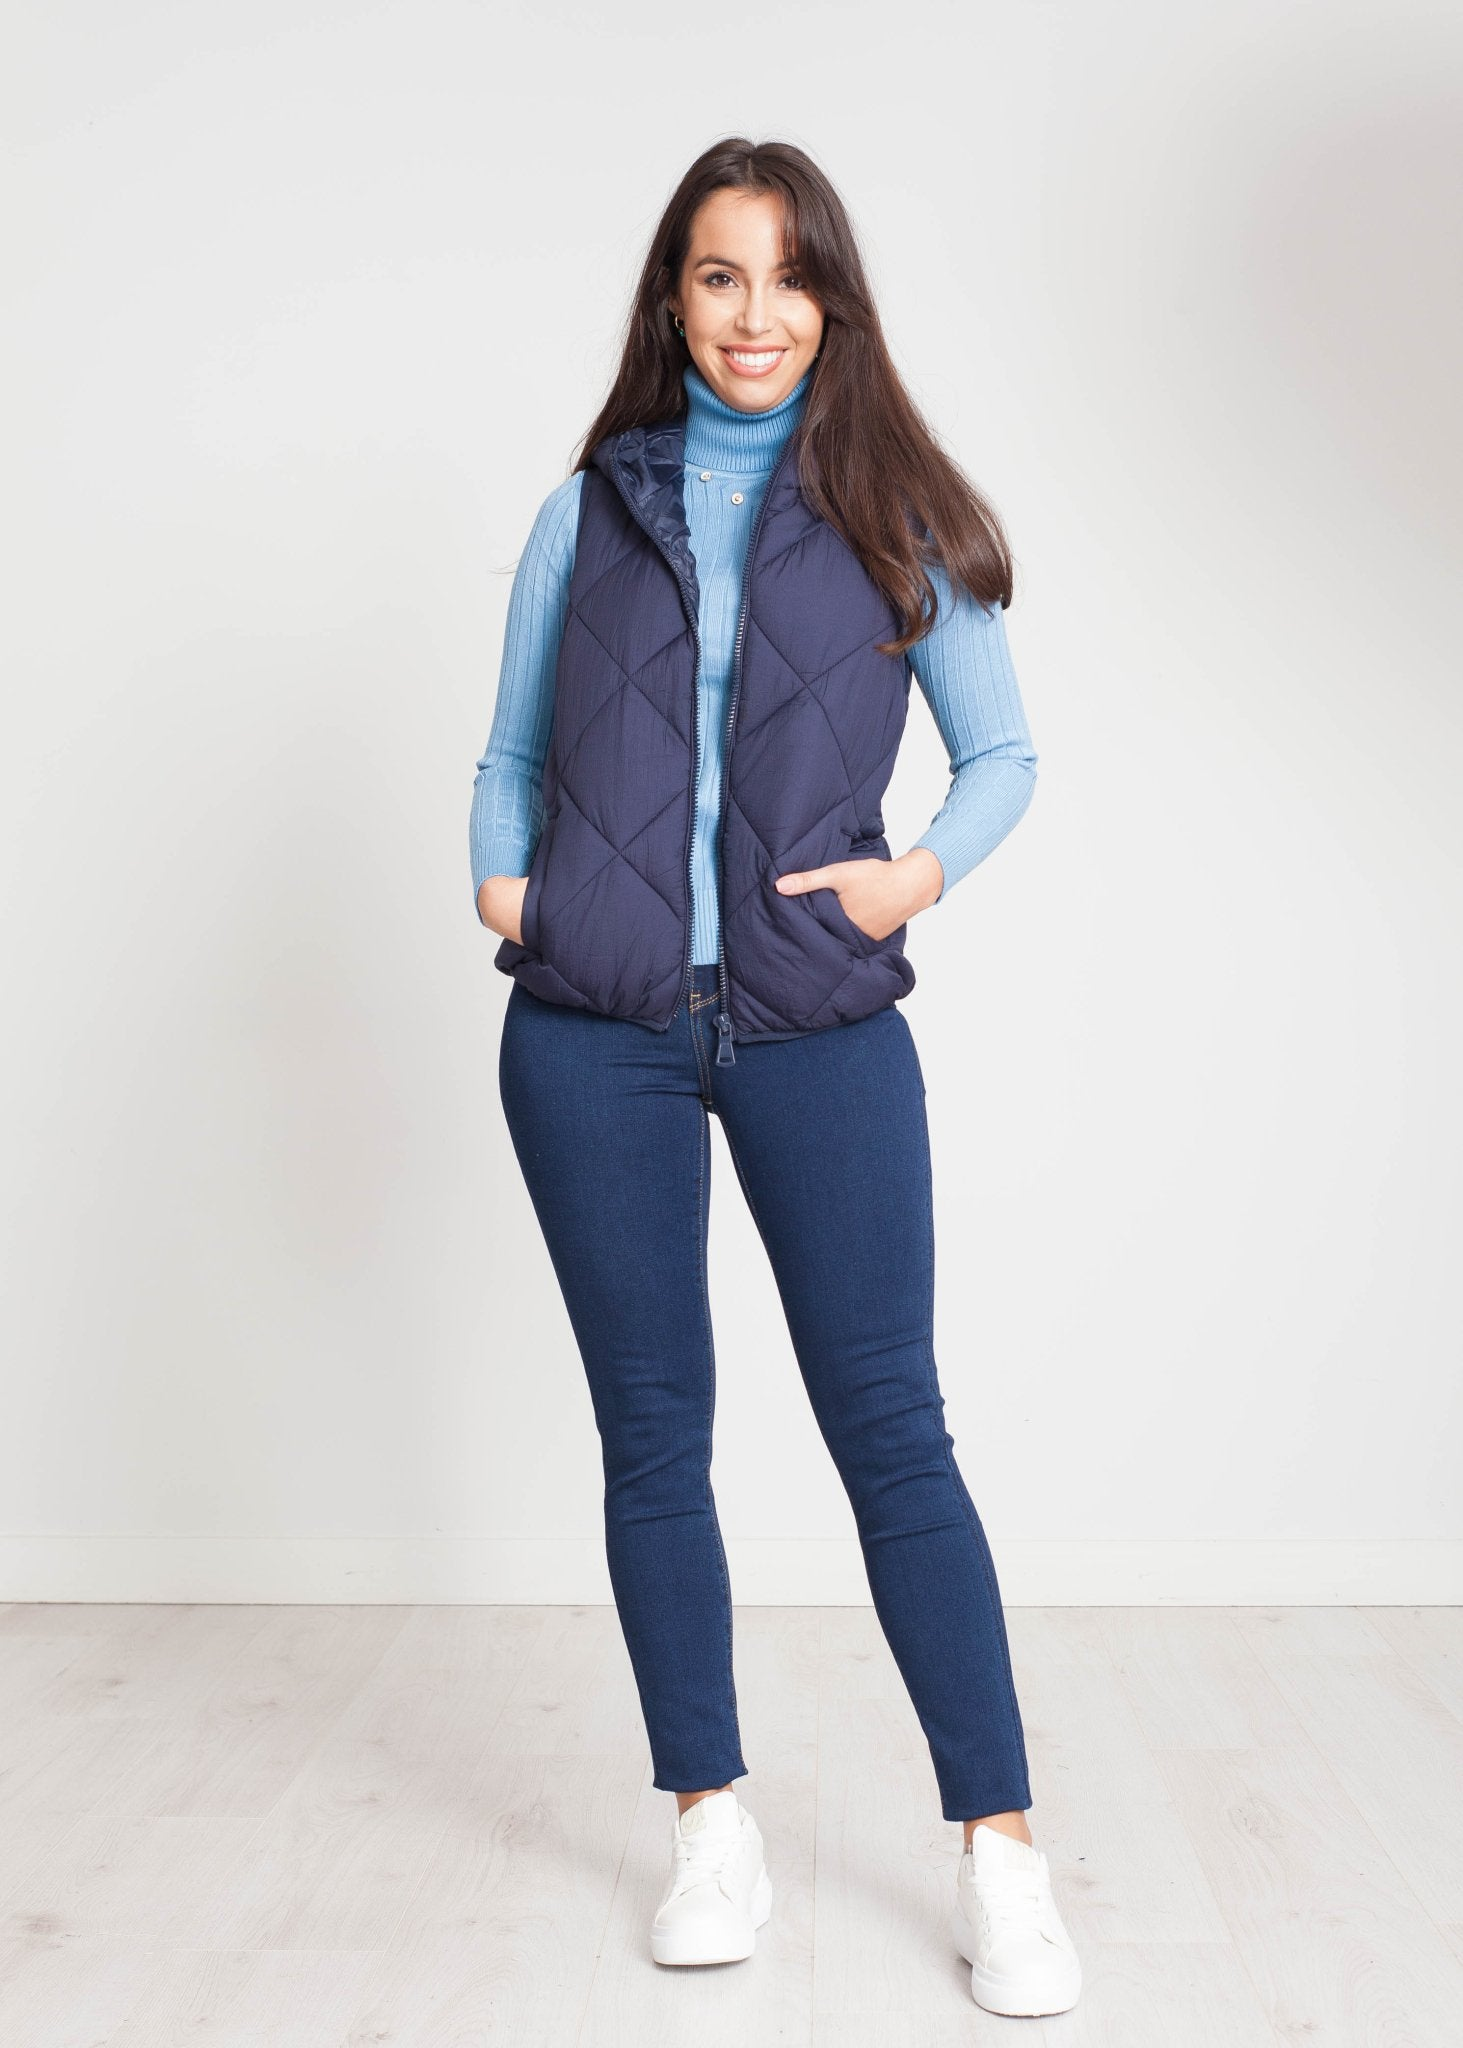 Alba Hooded Gilet In Navy - The Walk in Wardrobe